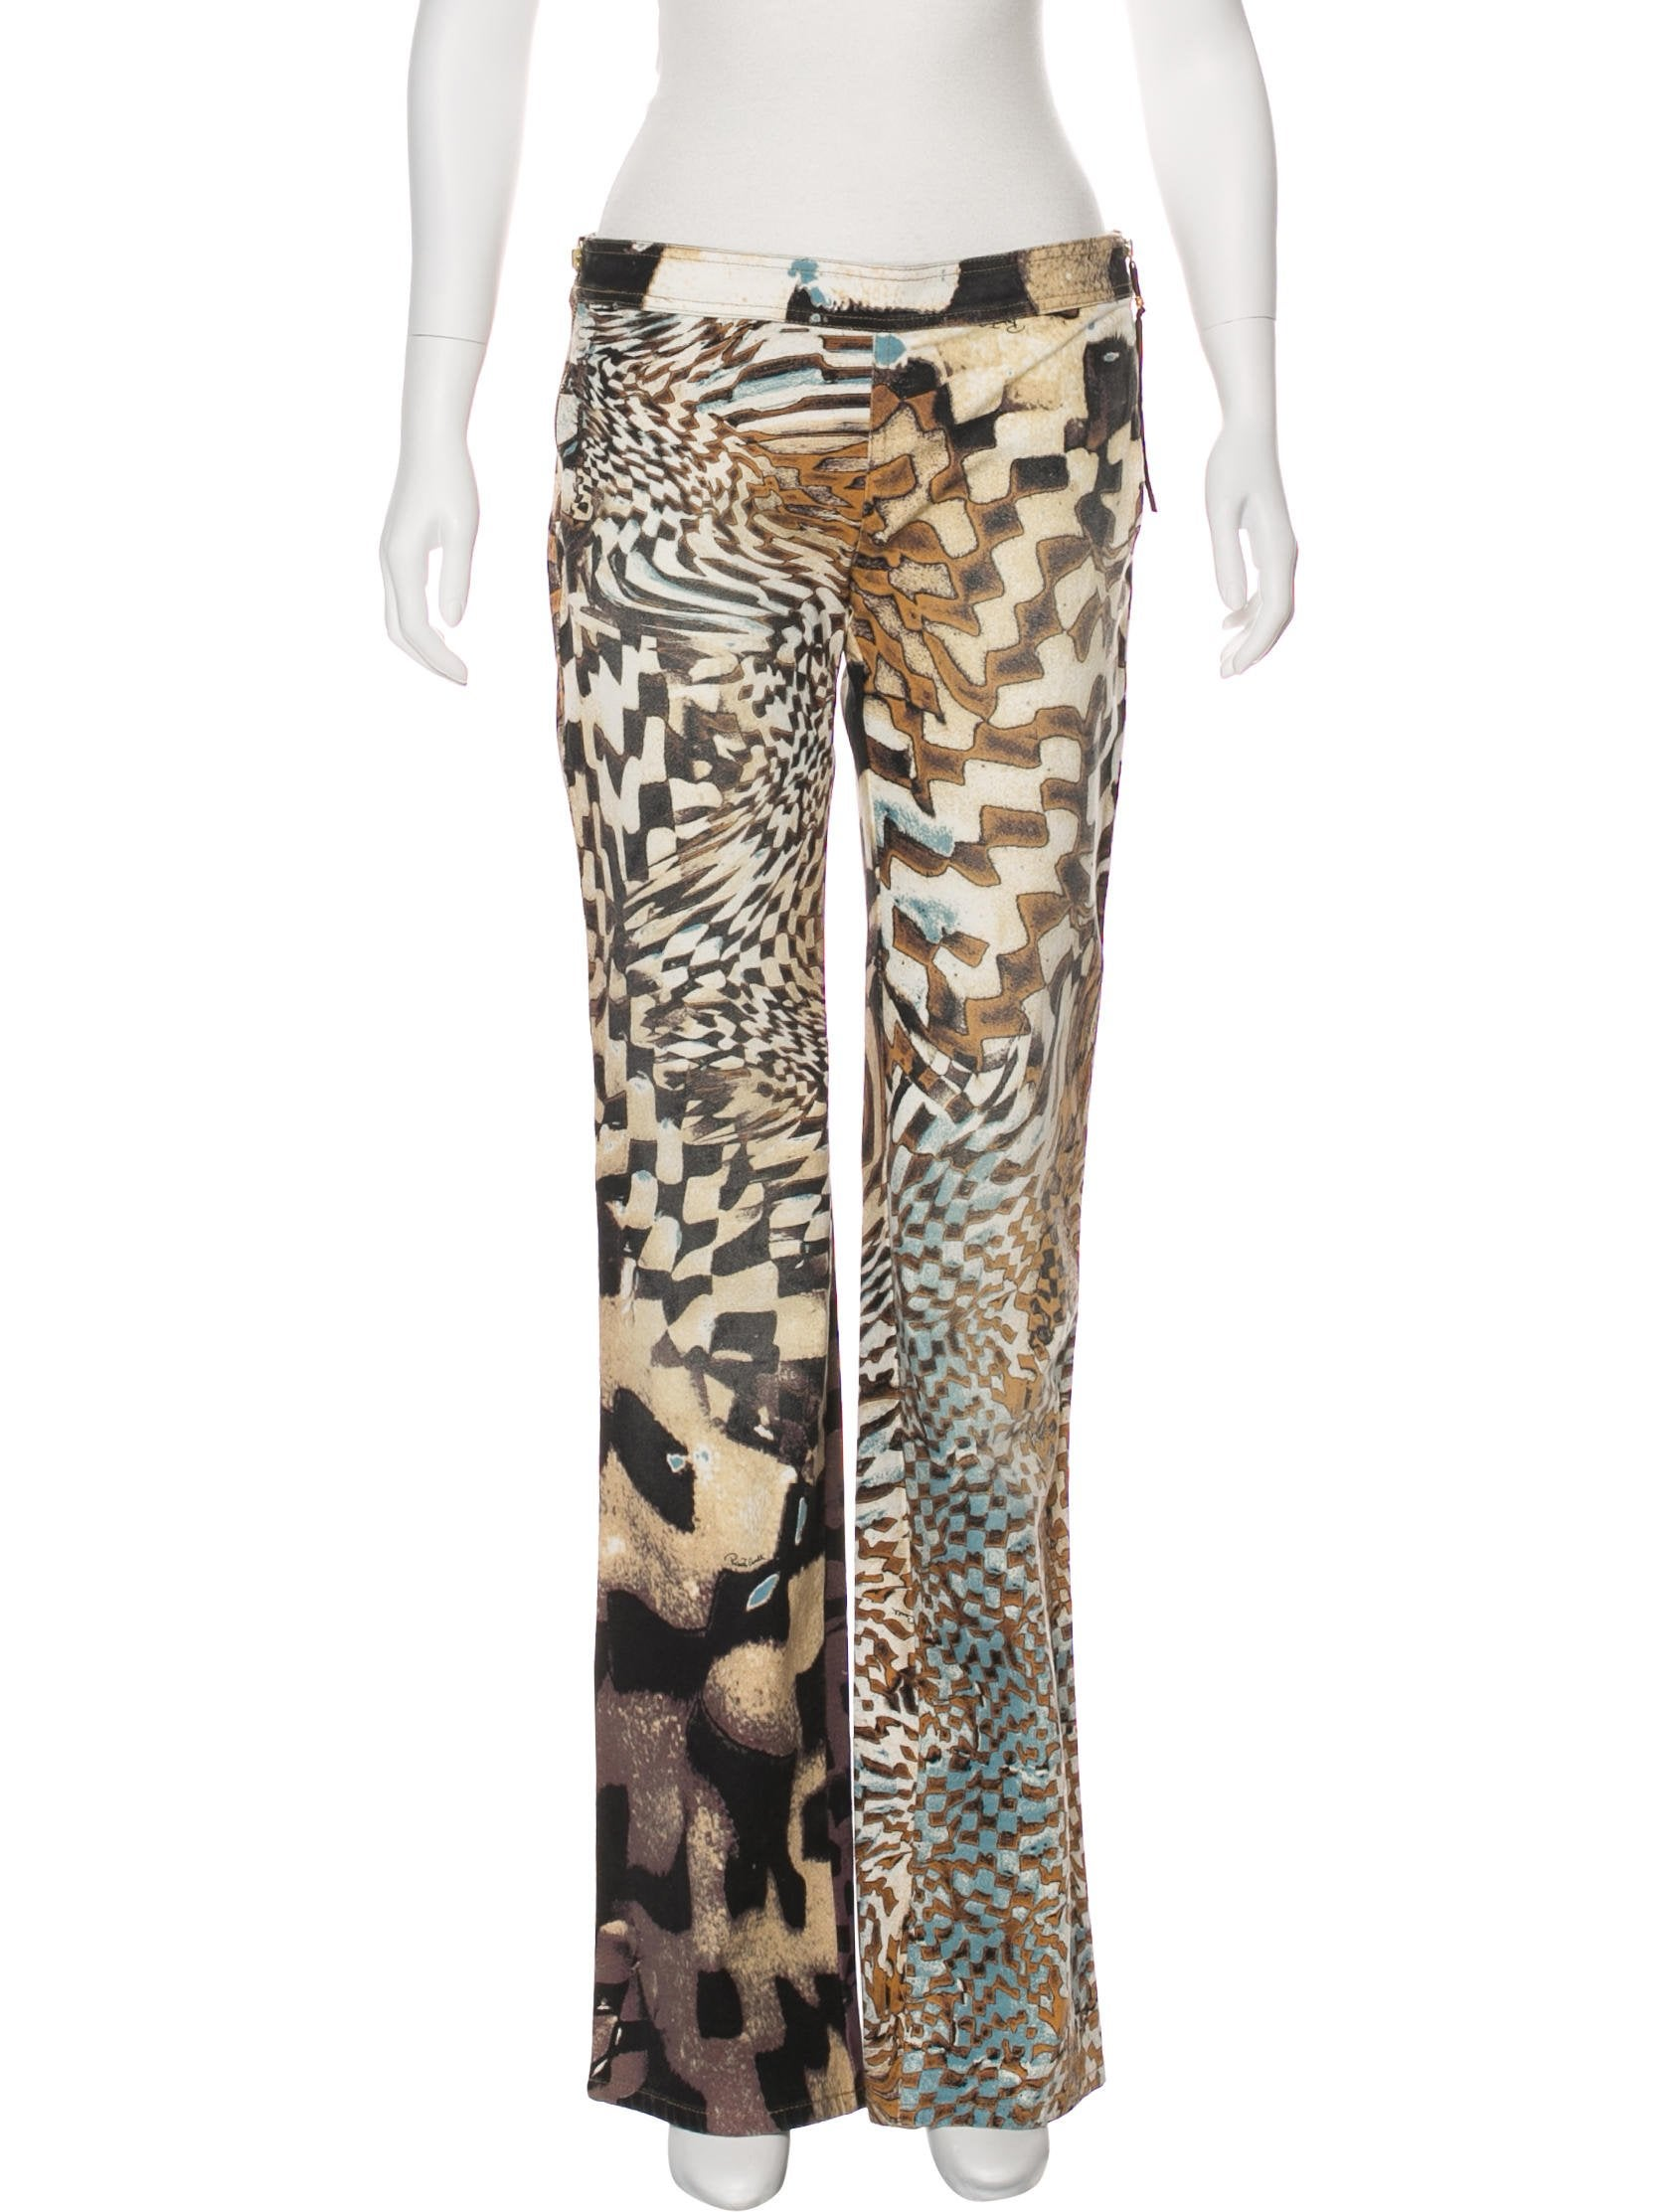 42e8f47309908 Roberto Cavalli Abstract Print Mid-Rise Flared Pants w/ Tags ...